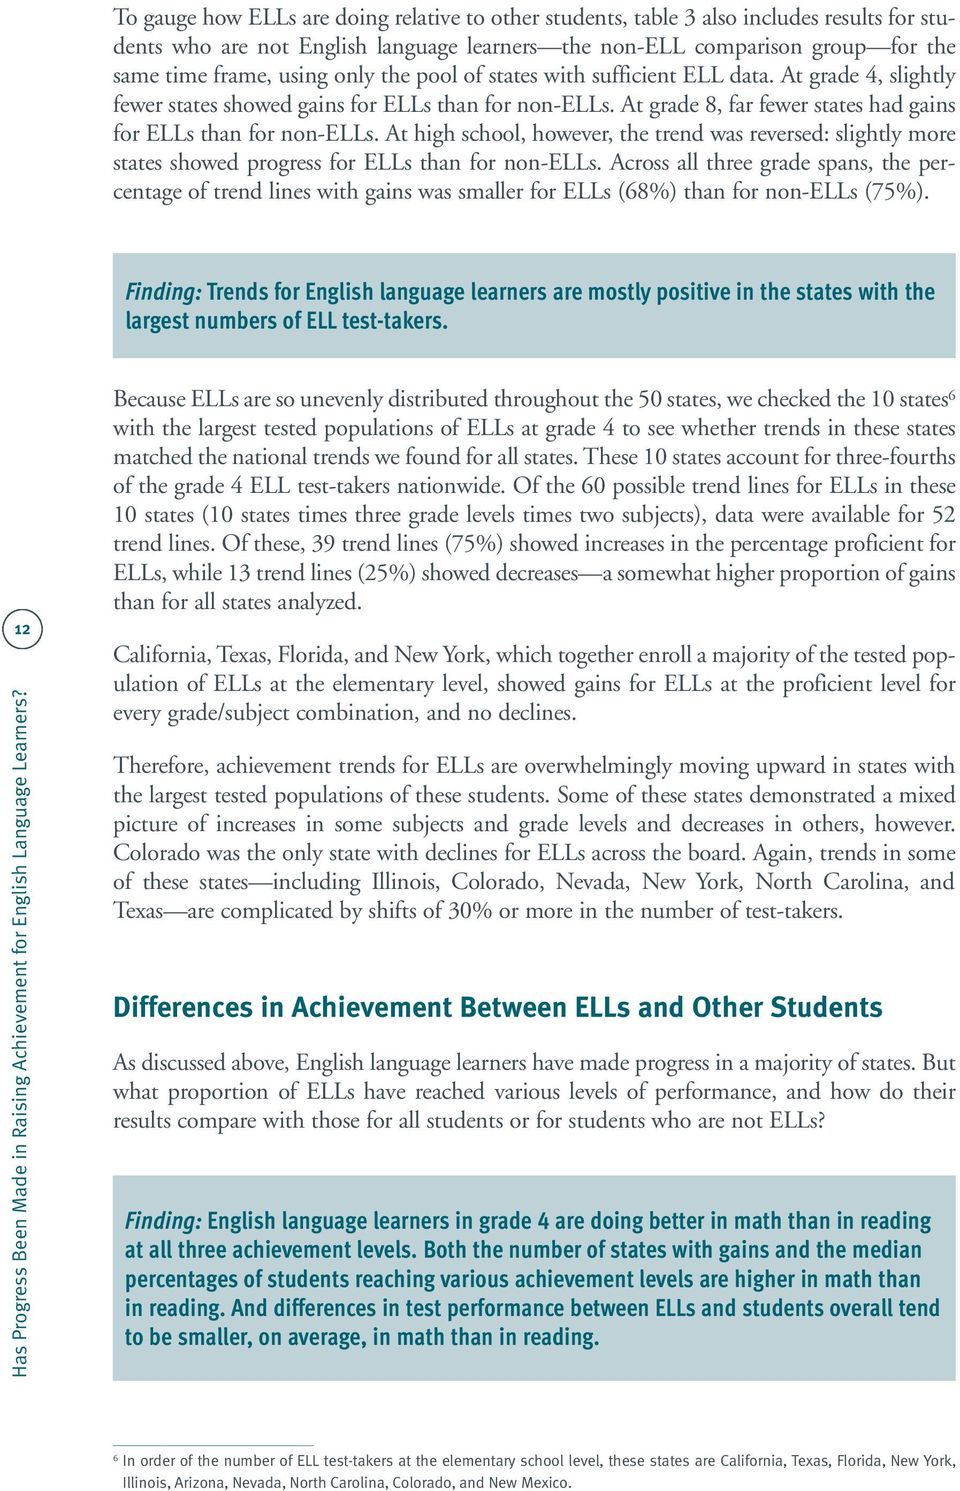 At high school, however, the trend was reversed: slightly more states showed progress for ELLs than for non-ells.